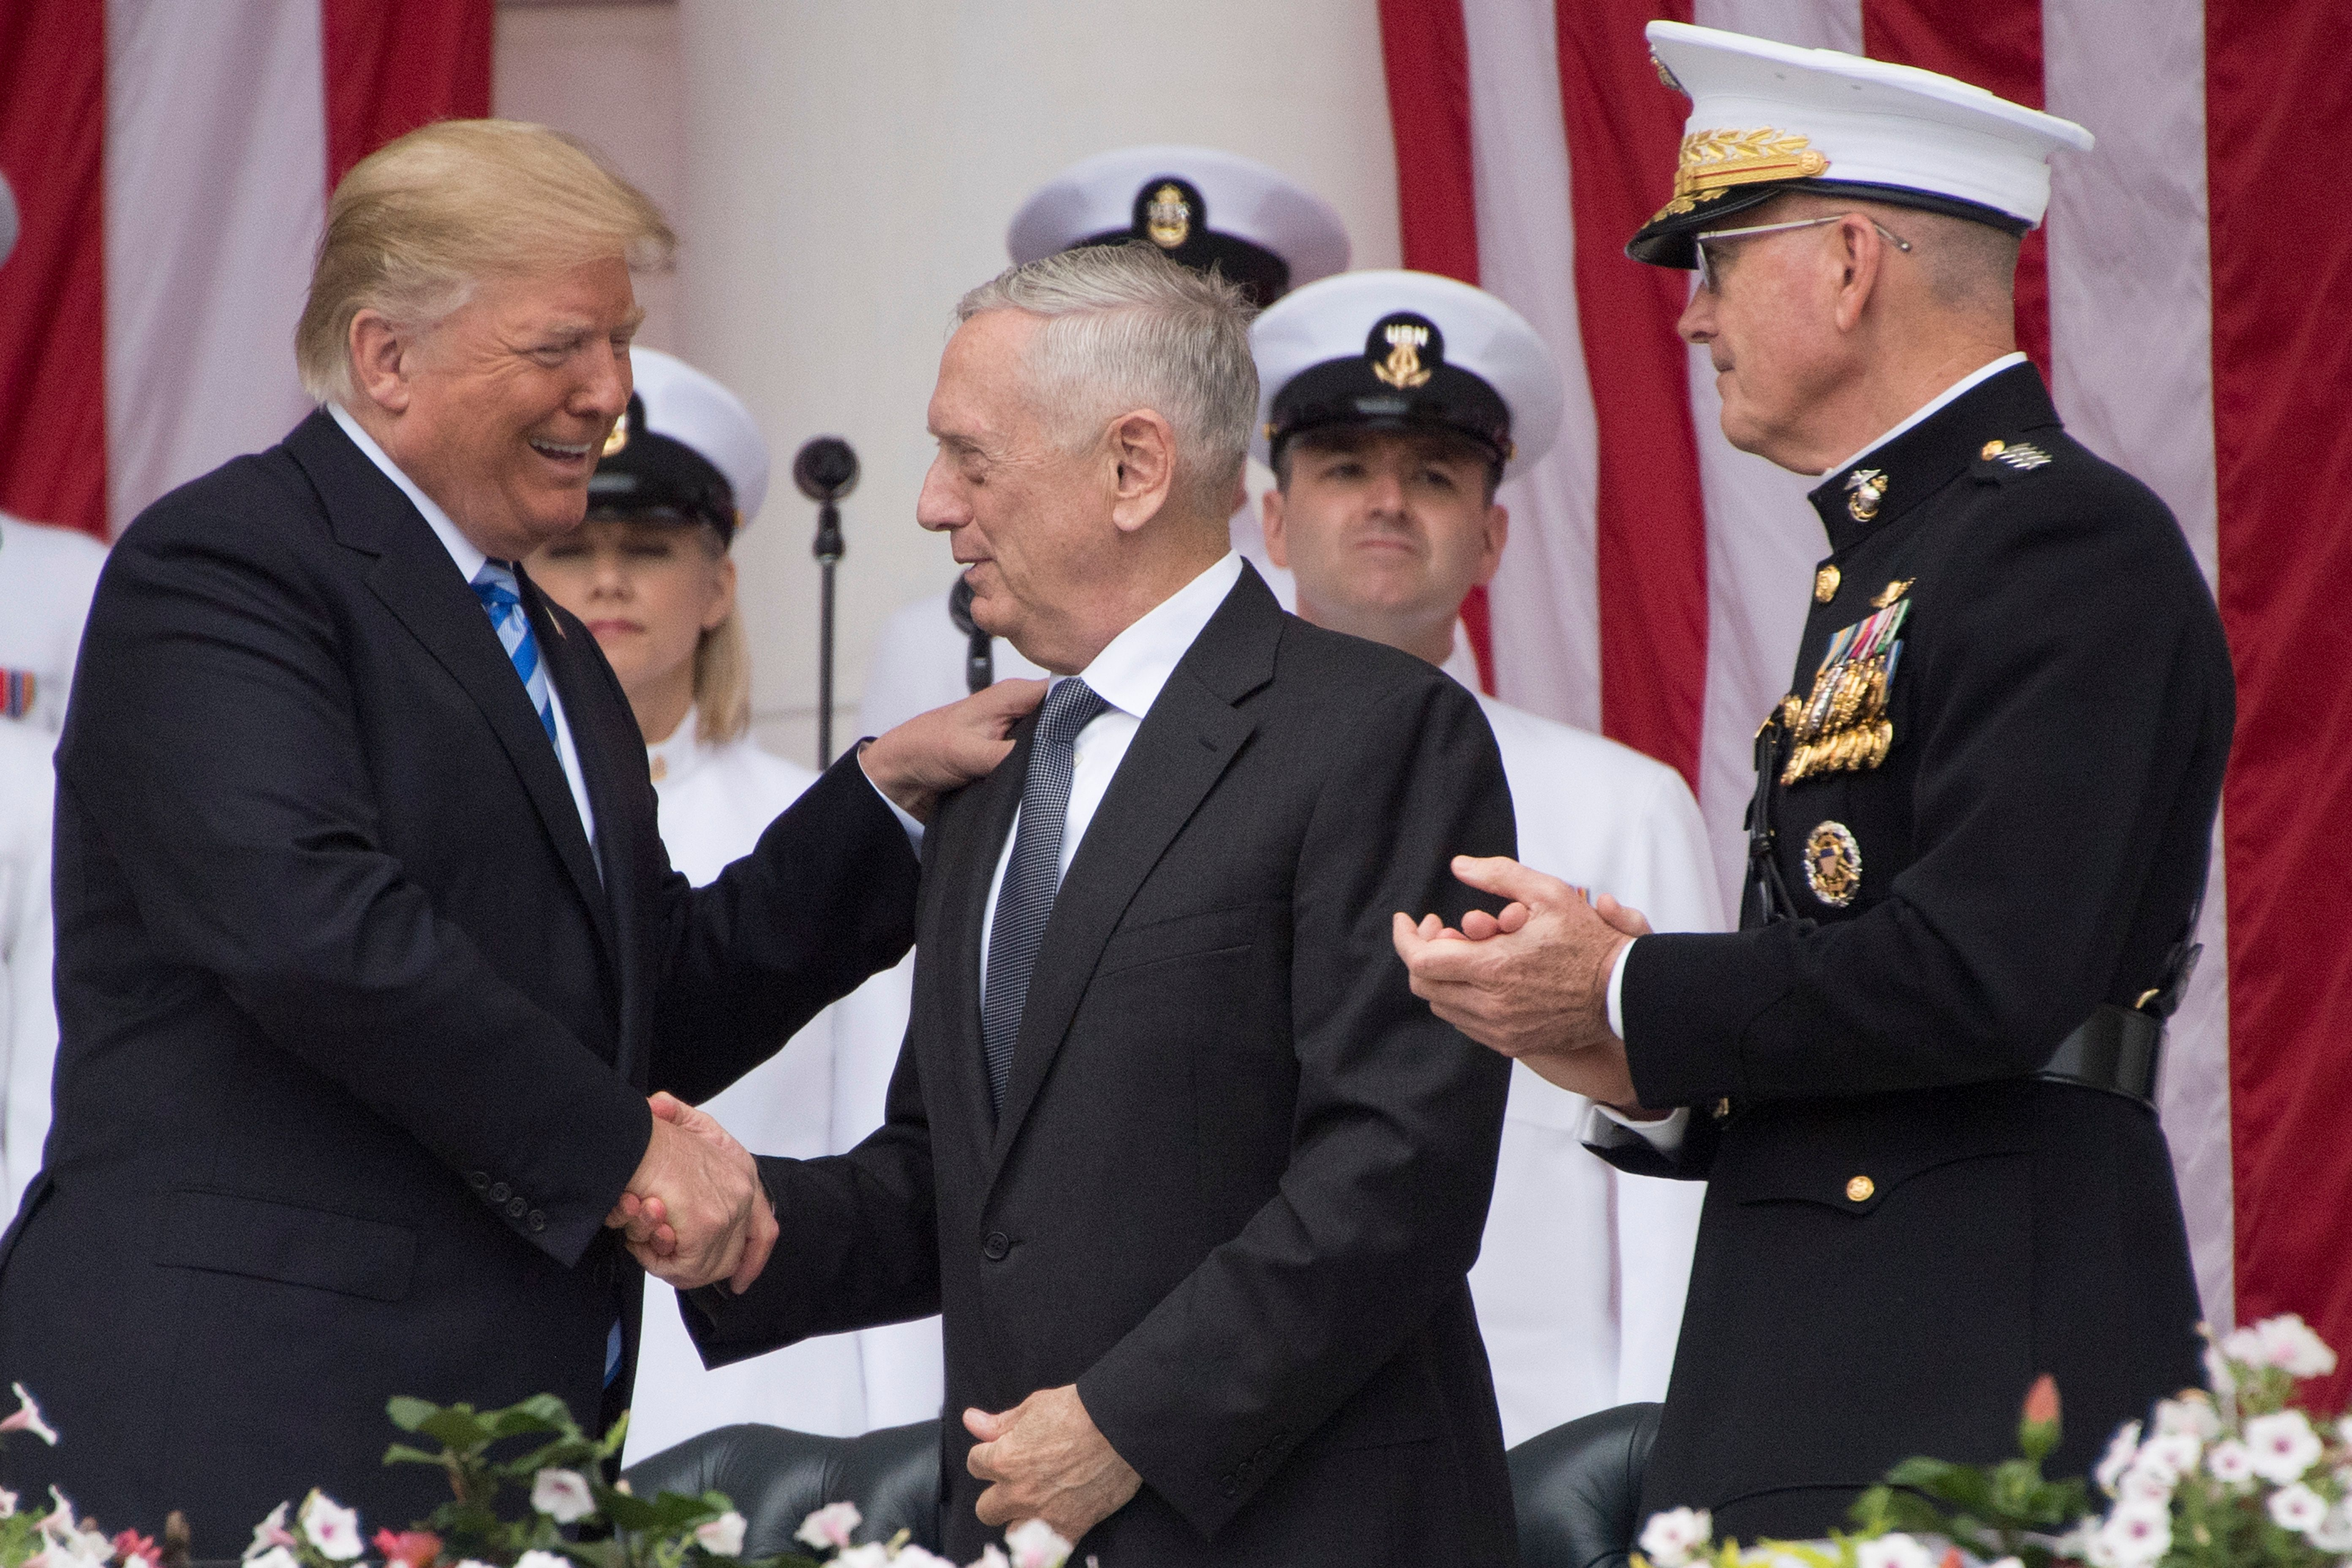 US President Donald Trump (L) greets US Secretary of Defense James Mattis (C) and Chairman of the Joint Chiefs of Staff General Joseph Dunford (R) before speaking at a Memorial Day ceremony at Arlington National Cemetery in Arlington, Virginia, on May 28, 2018. (Photo by JIM WATSON / AFP) (Photo credit should read JIM WATSON/AFP/Getty Images)